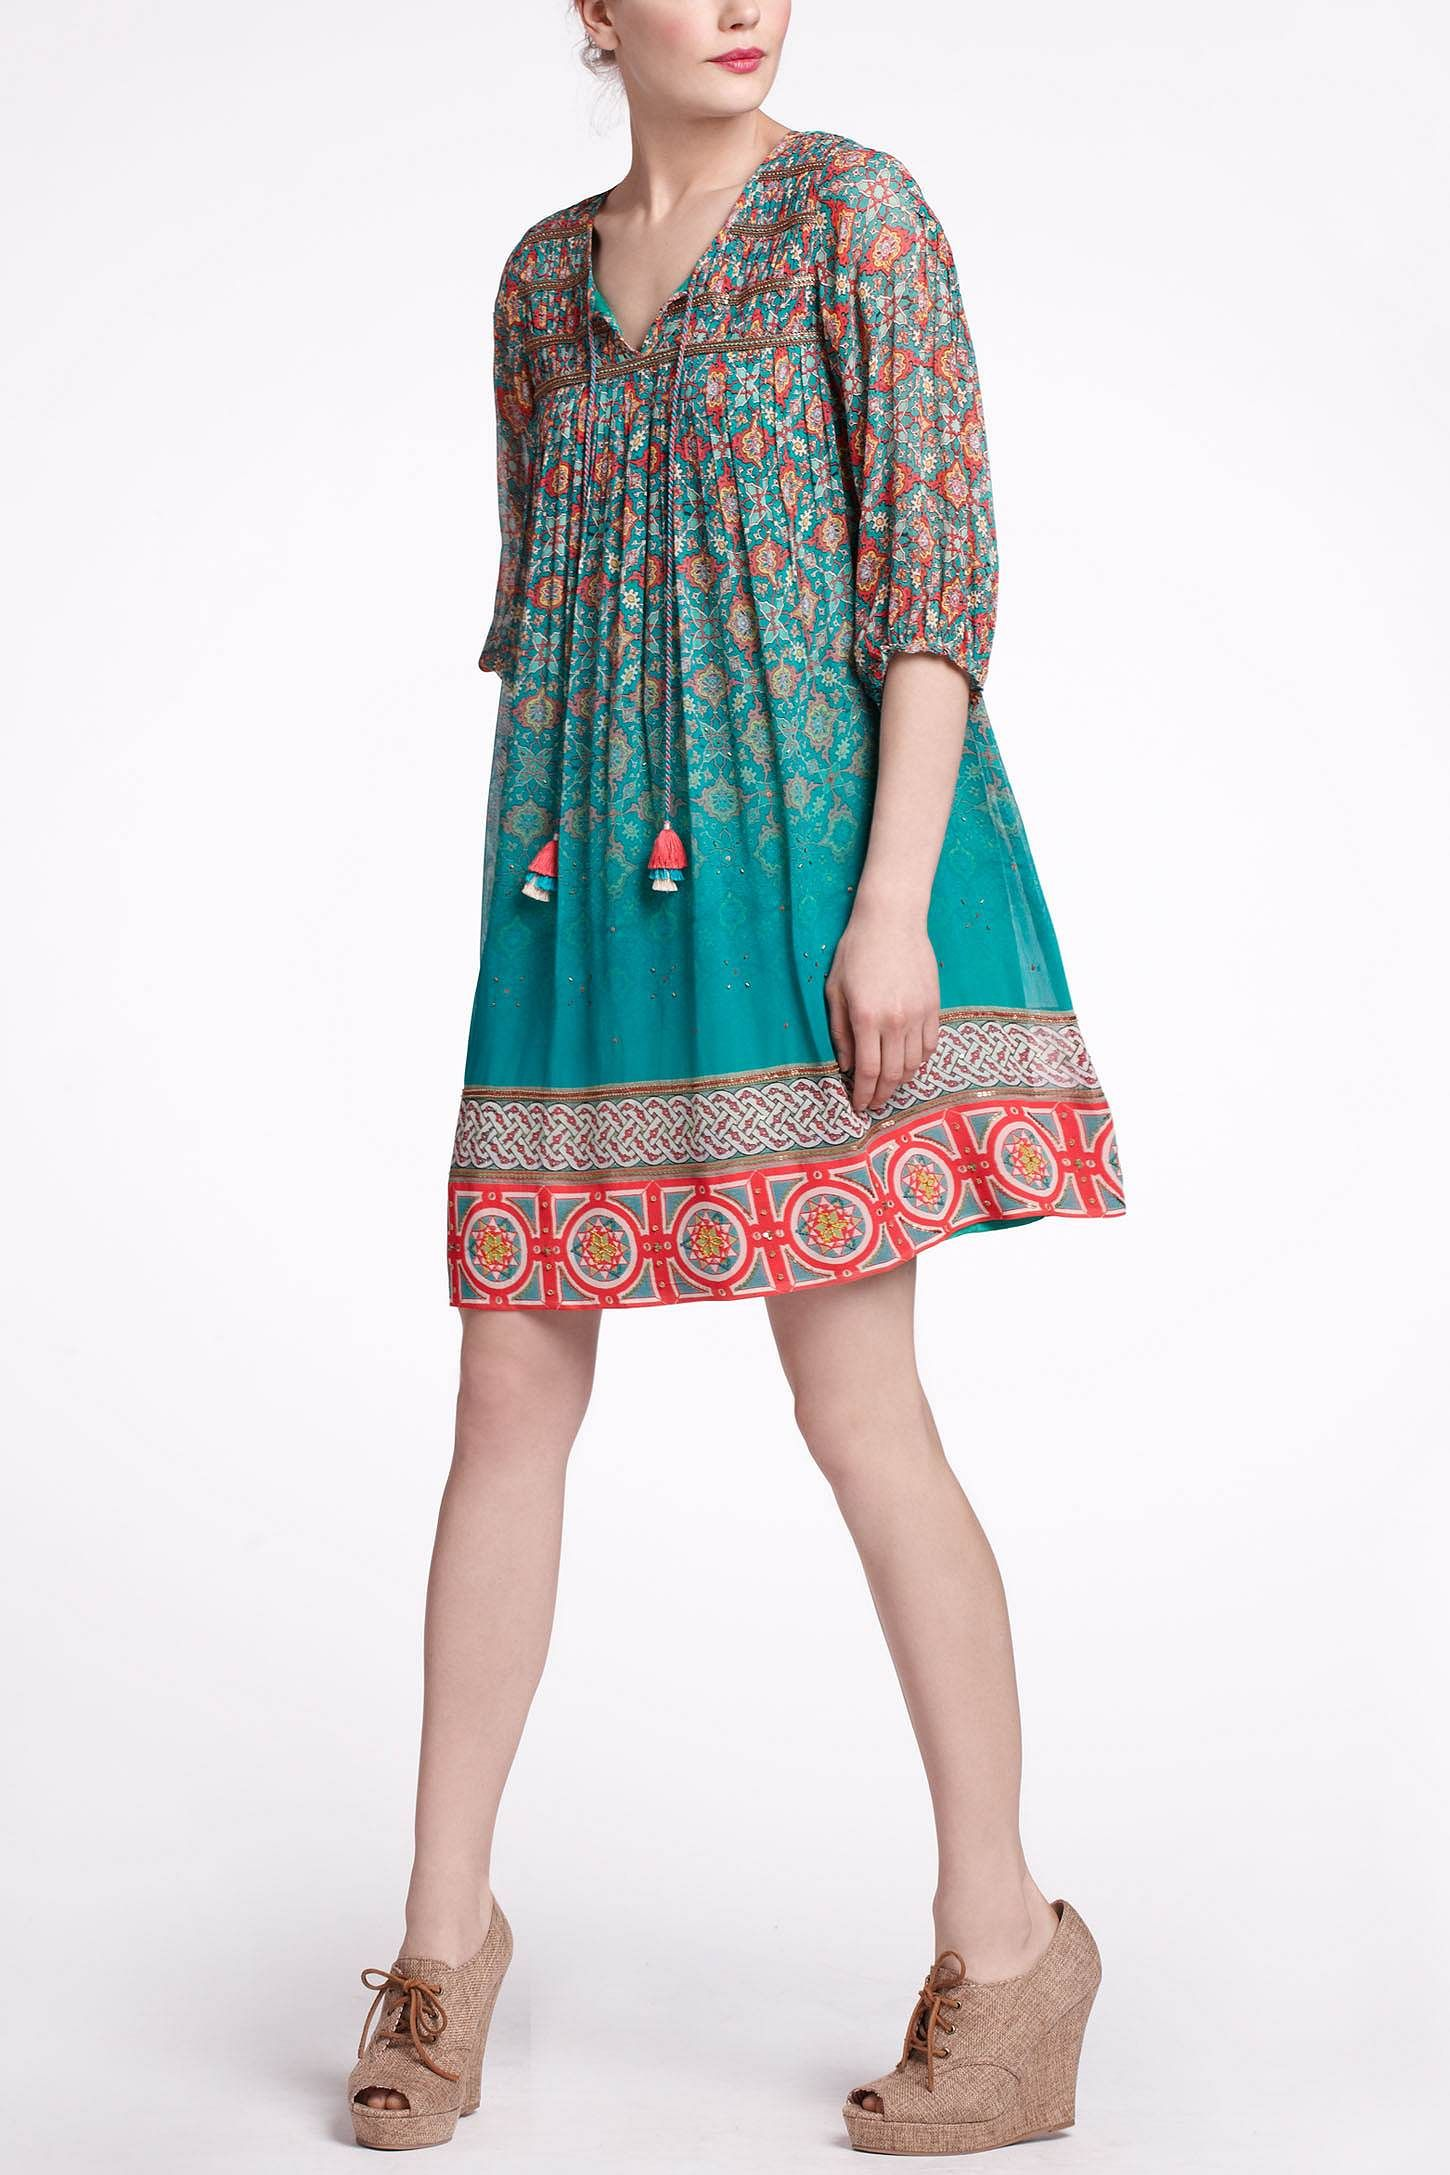 Glimmered Ankita Dress - Anthropologie.com